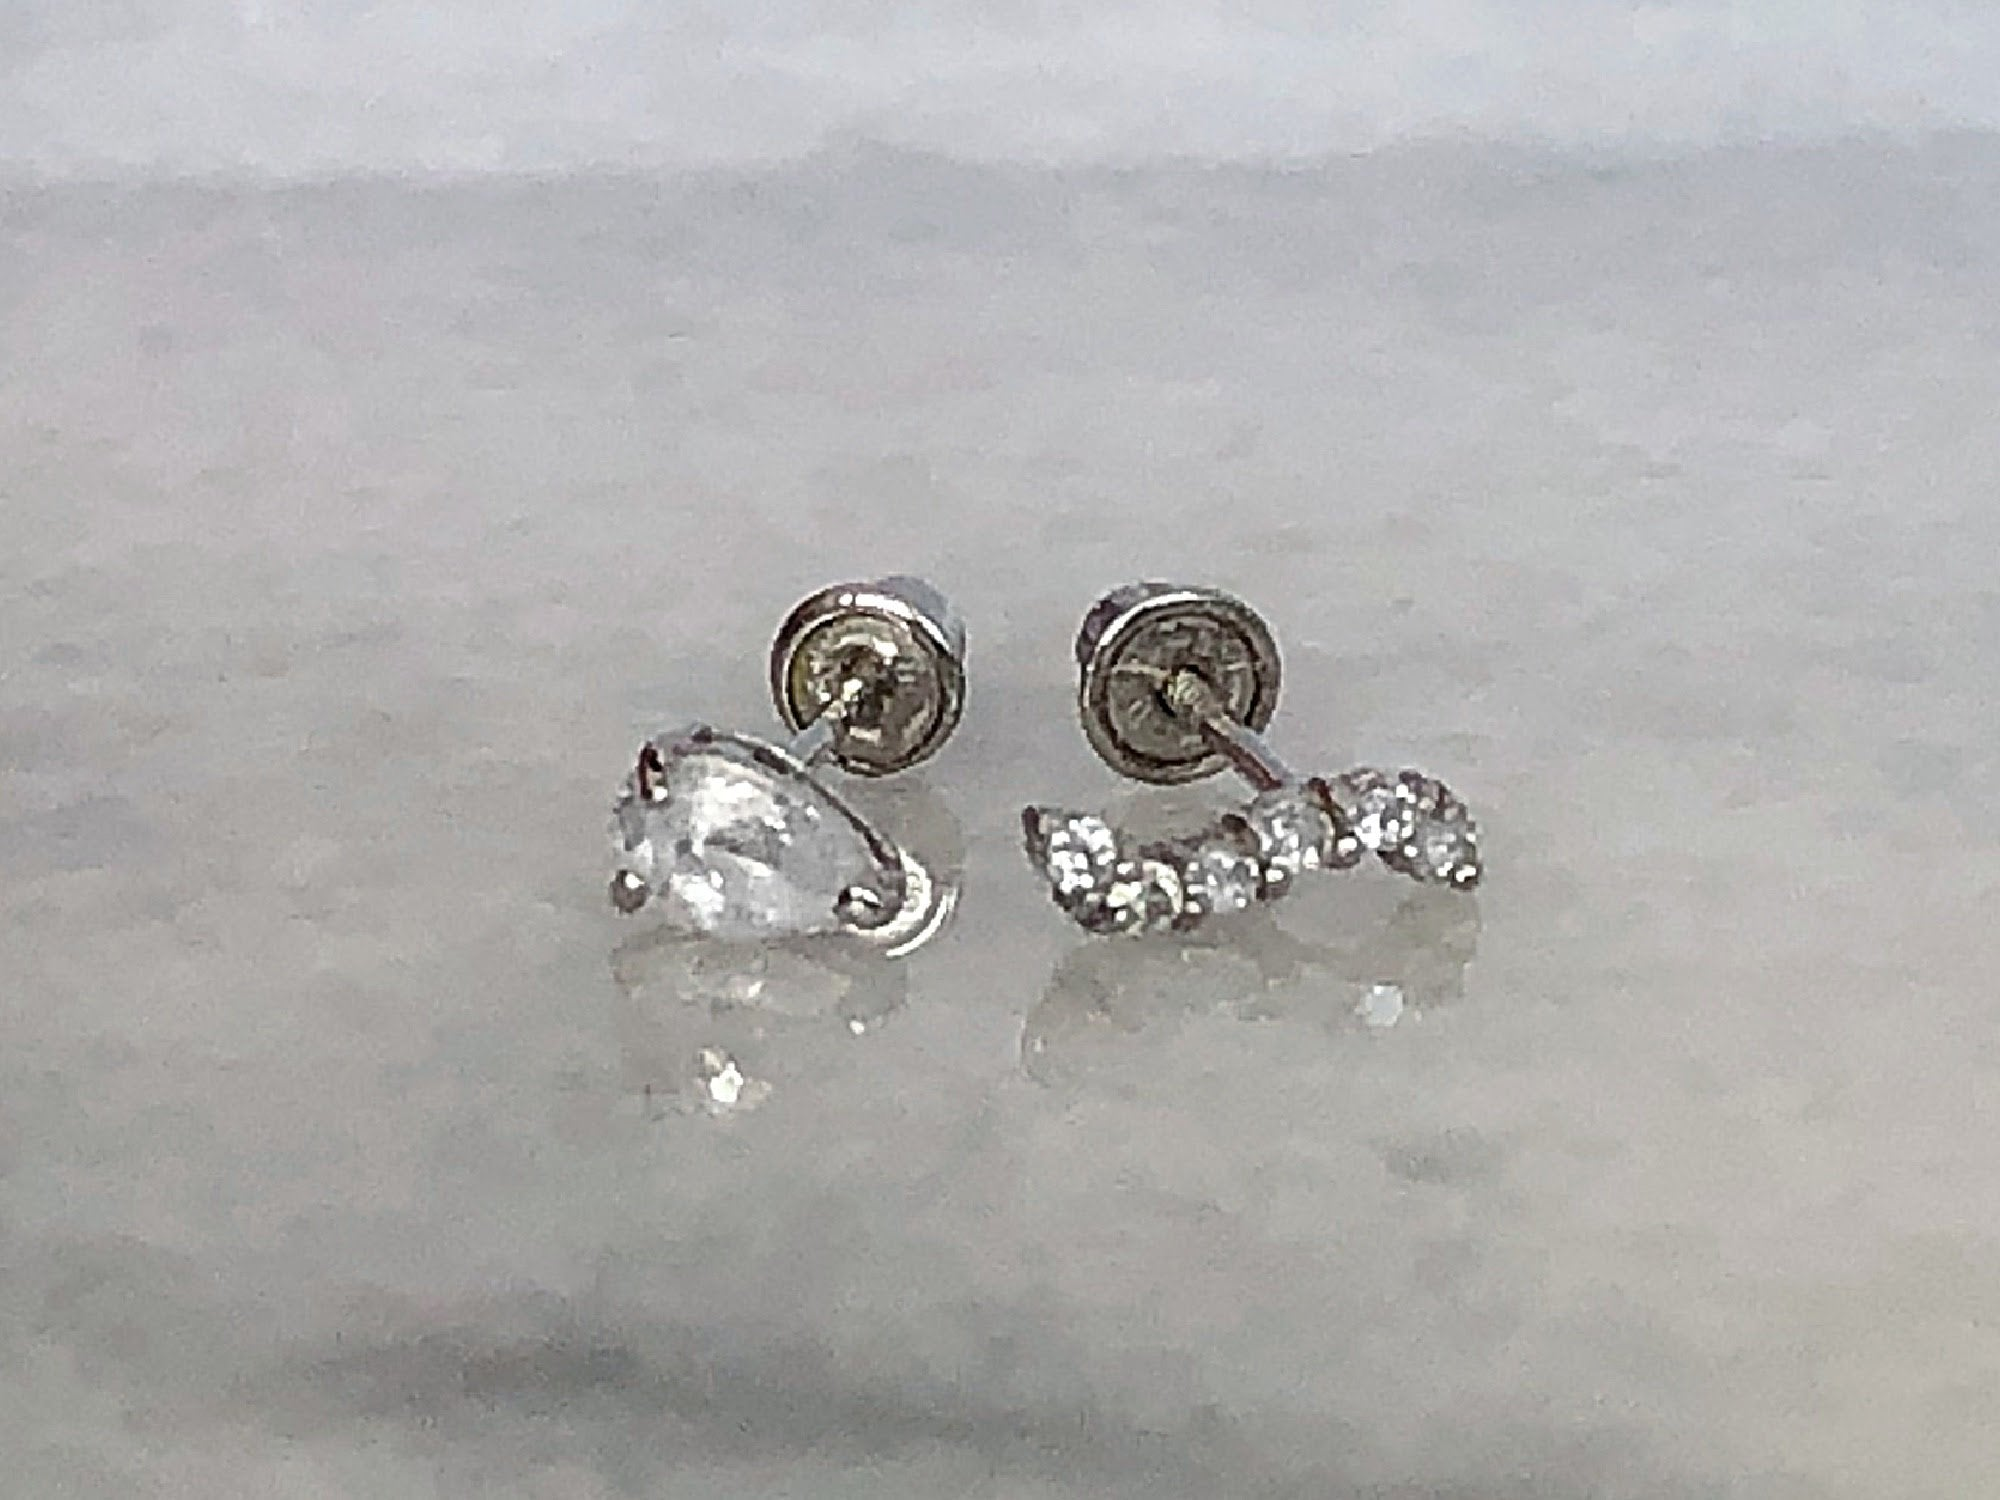 Wave Stud Earrings Group | Screw Back Earrings | Solid Gold Hypoallergenic Jewelry | Helix, Cartilage | Two of Most Fine Jewelry